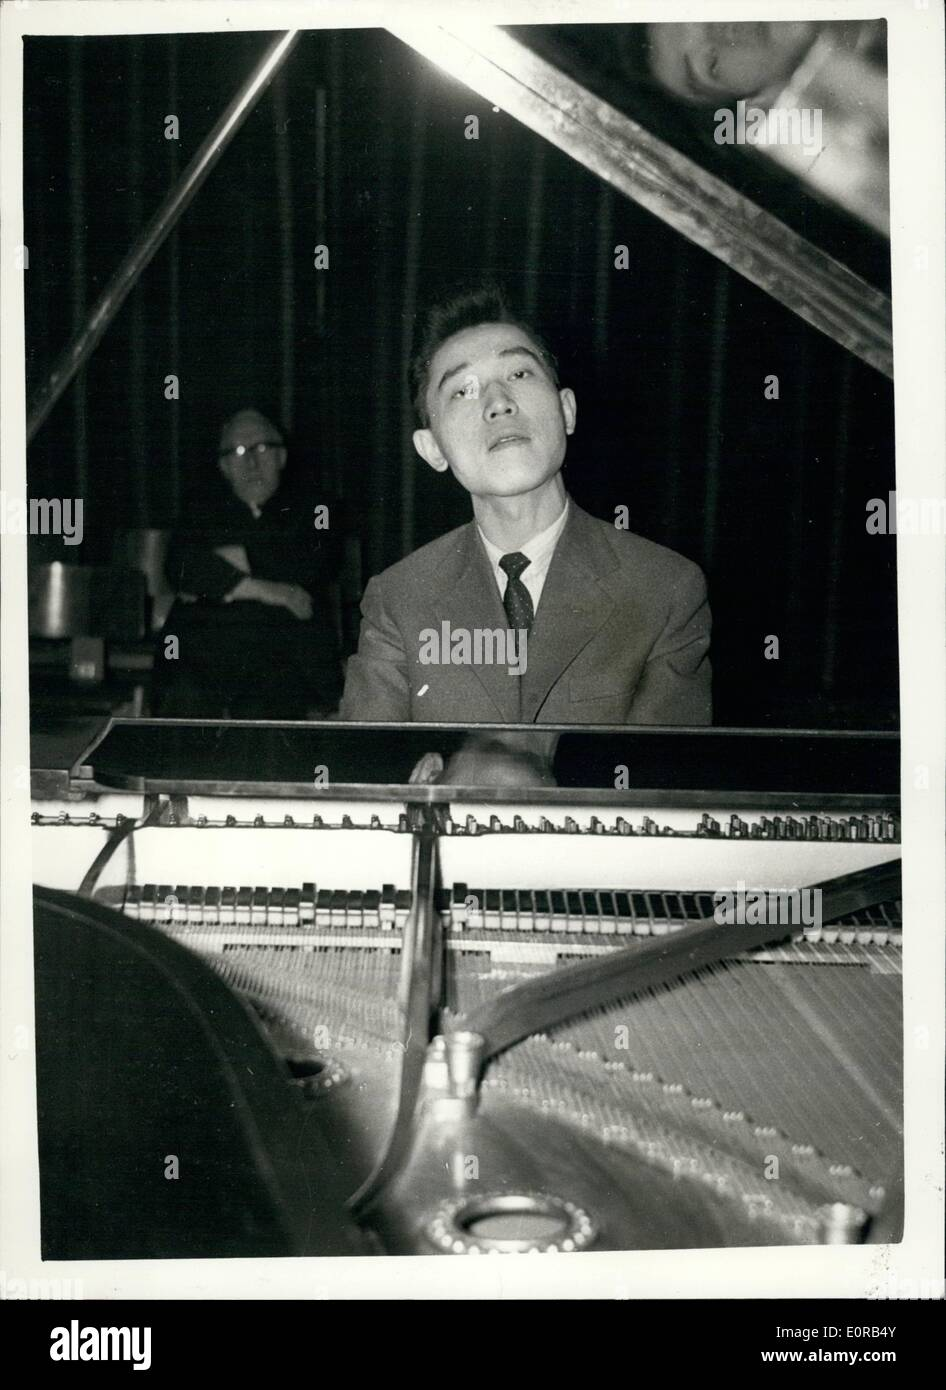 Dec. 12, 1958 - Chinese Pianist leaves hideout to give recital.: Chinese concert pianist Fou Ts'ong who is hiding in this country - having arrived from Poland last week - gave a concert before a few persons = at the Riyal Festival Hall last evening. Fou has refused an order from Peking to return to China - where, he says, he would be imprisoned. One attempt has already been made by 'red' agents to capture him in London. The agents were spotted outside the front entrance to a London hotel - and he was taken out by a side exit - and is now being carefully guarded - Stock Image